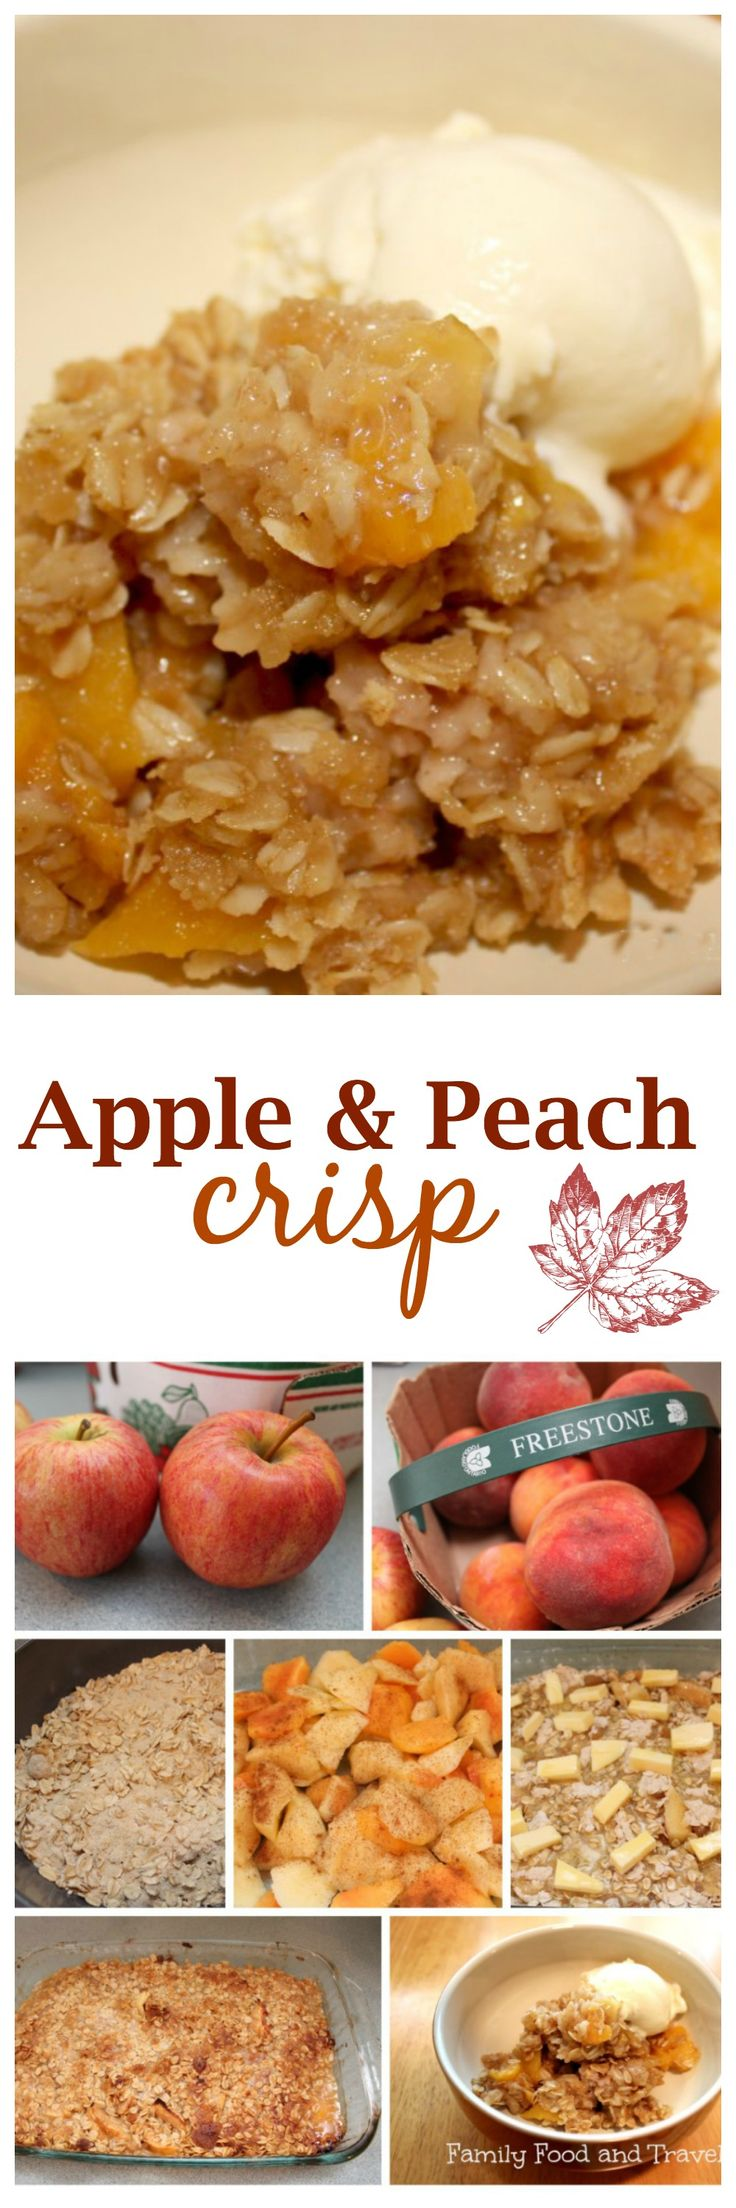 Apple and Peach Crisp is a favorite Fall dessert recipe. With just the perfect amount of sweetness and bursting with fruit it pairs with vanilla ice cream.